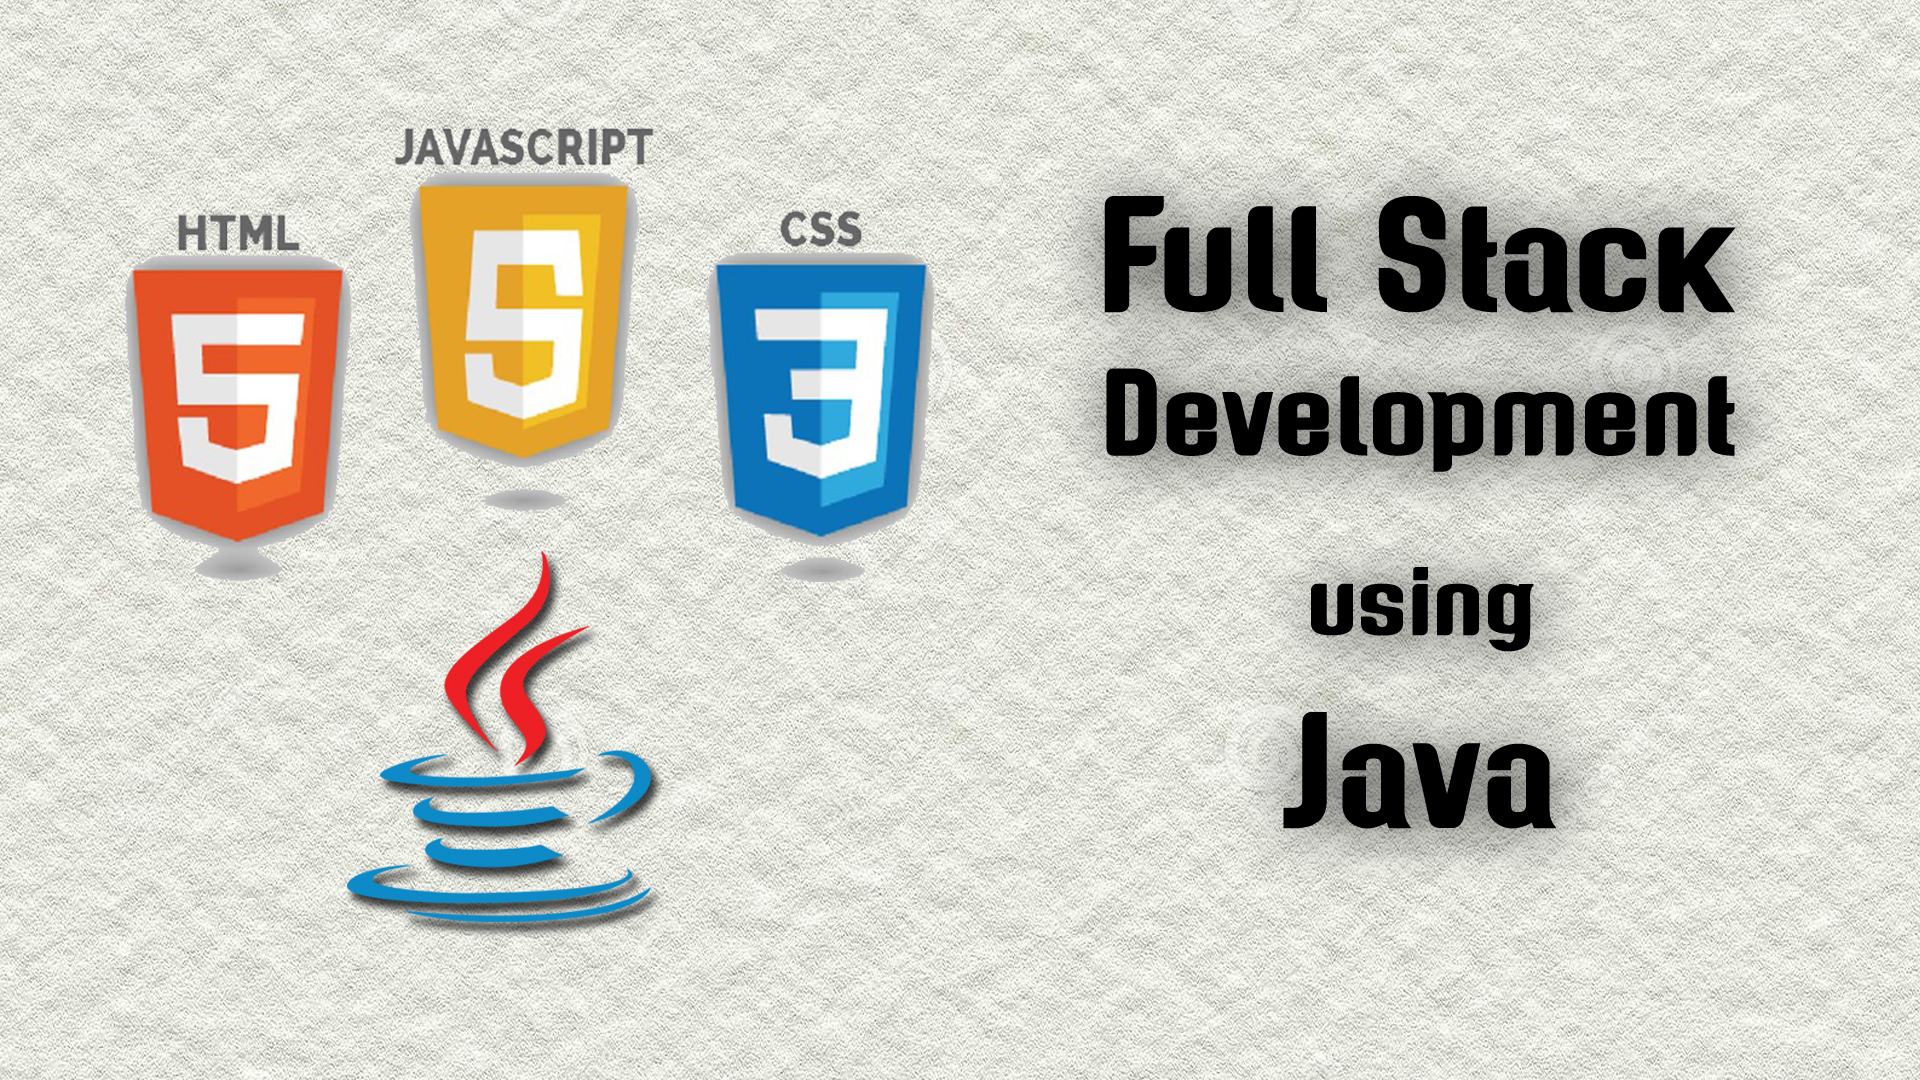 Full Stack Development using Java